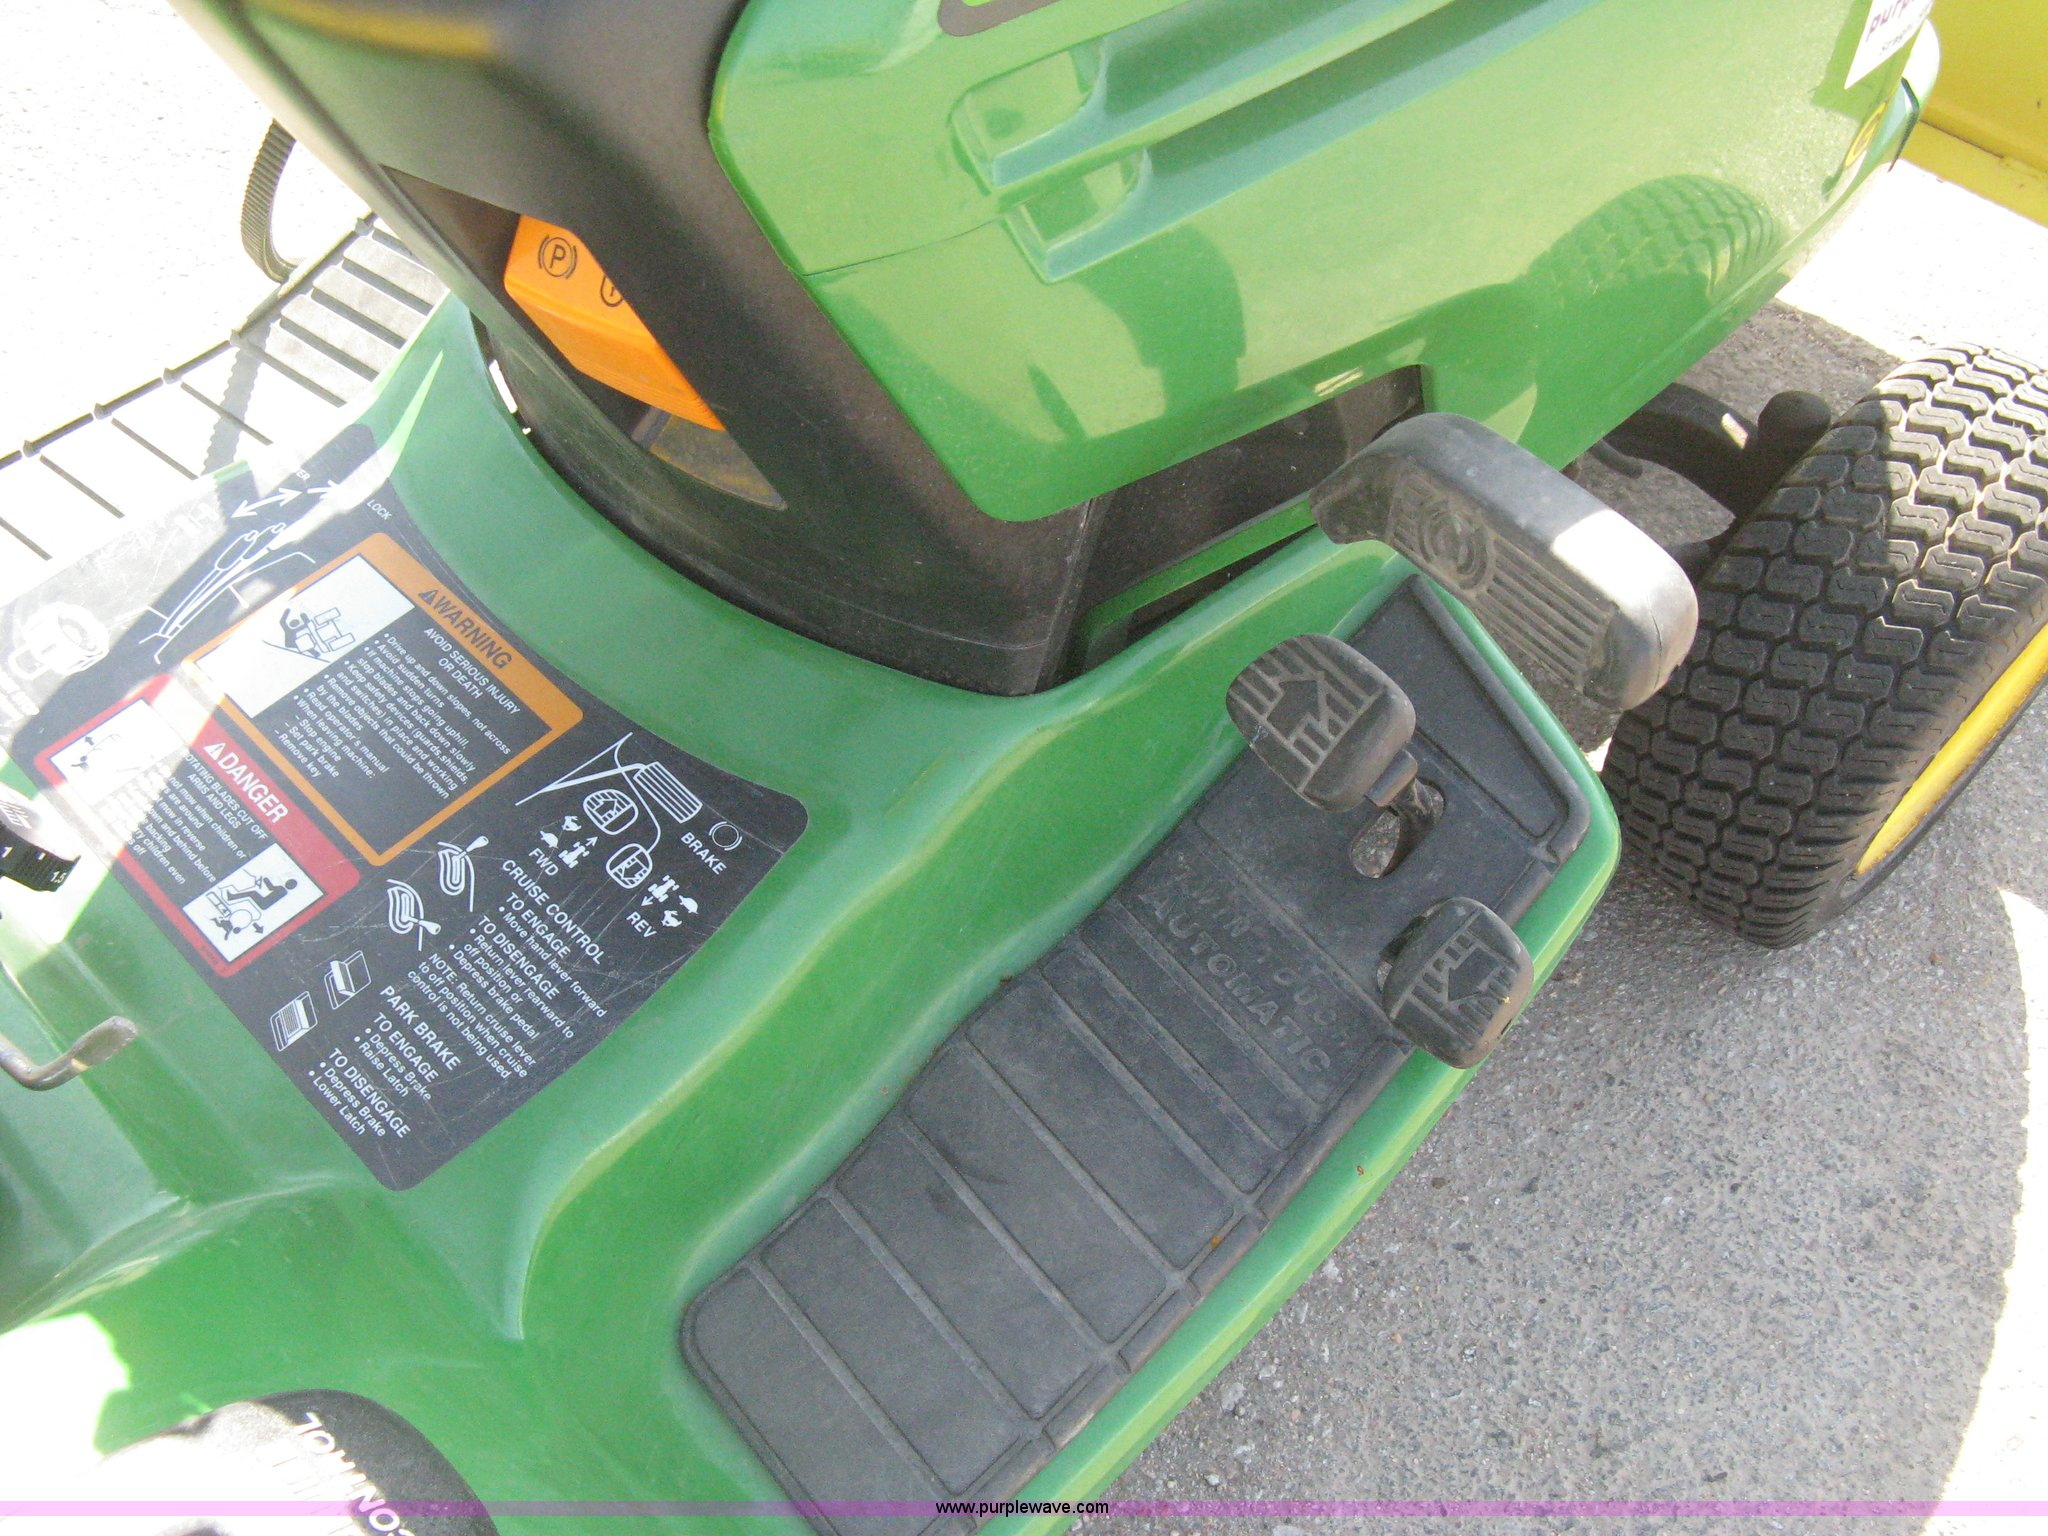 John Deere GT245 lawn mower | Item B8316 | SOLD! Tuesday Oct